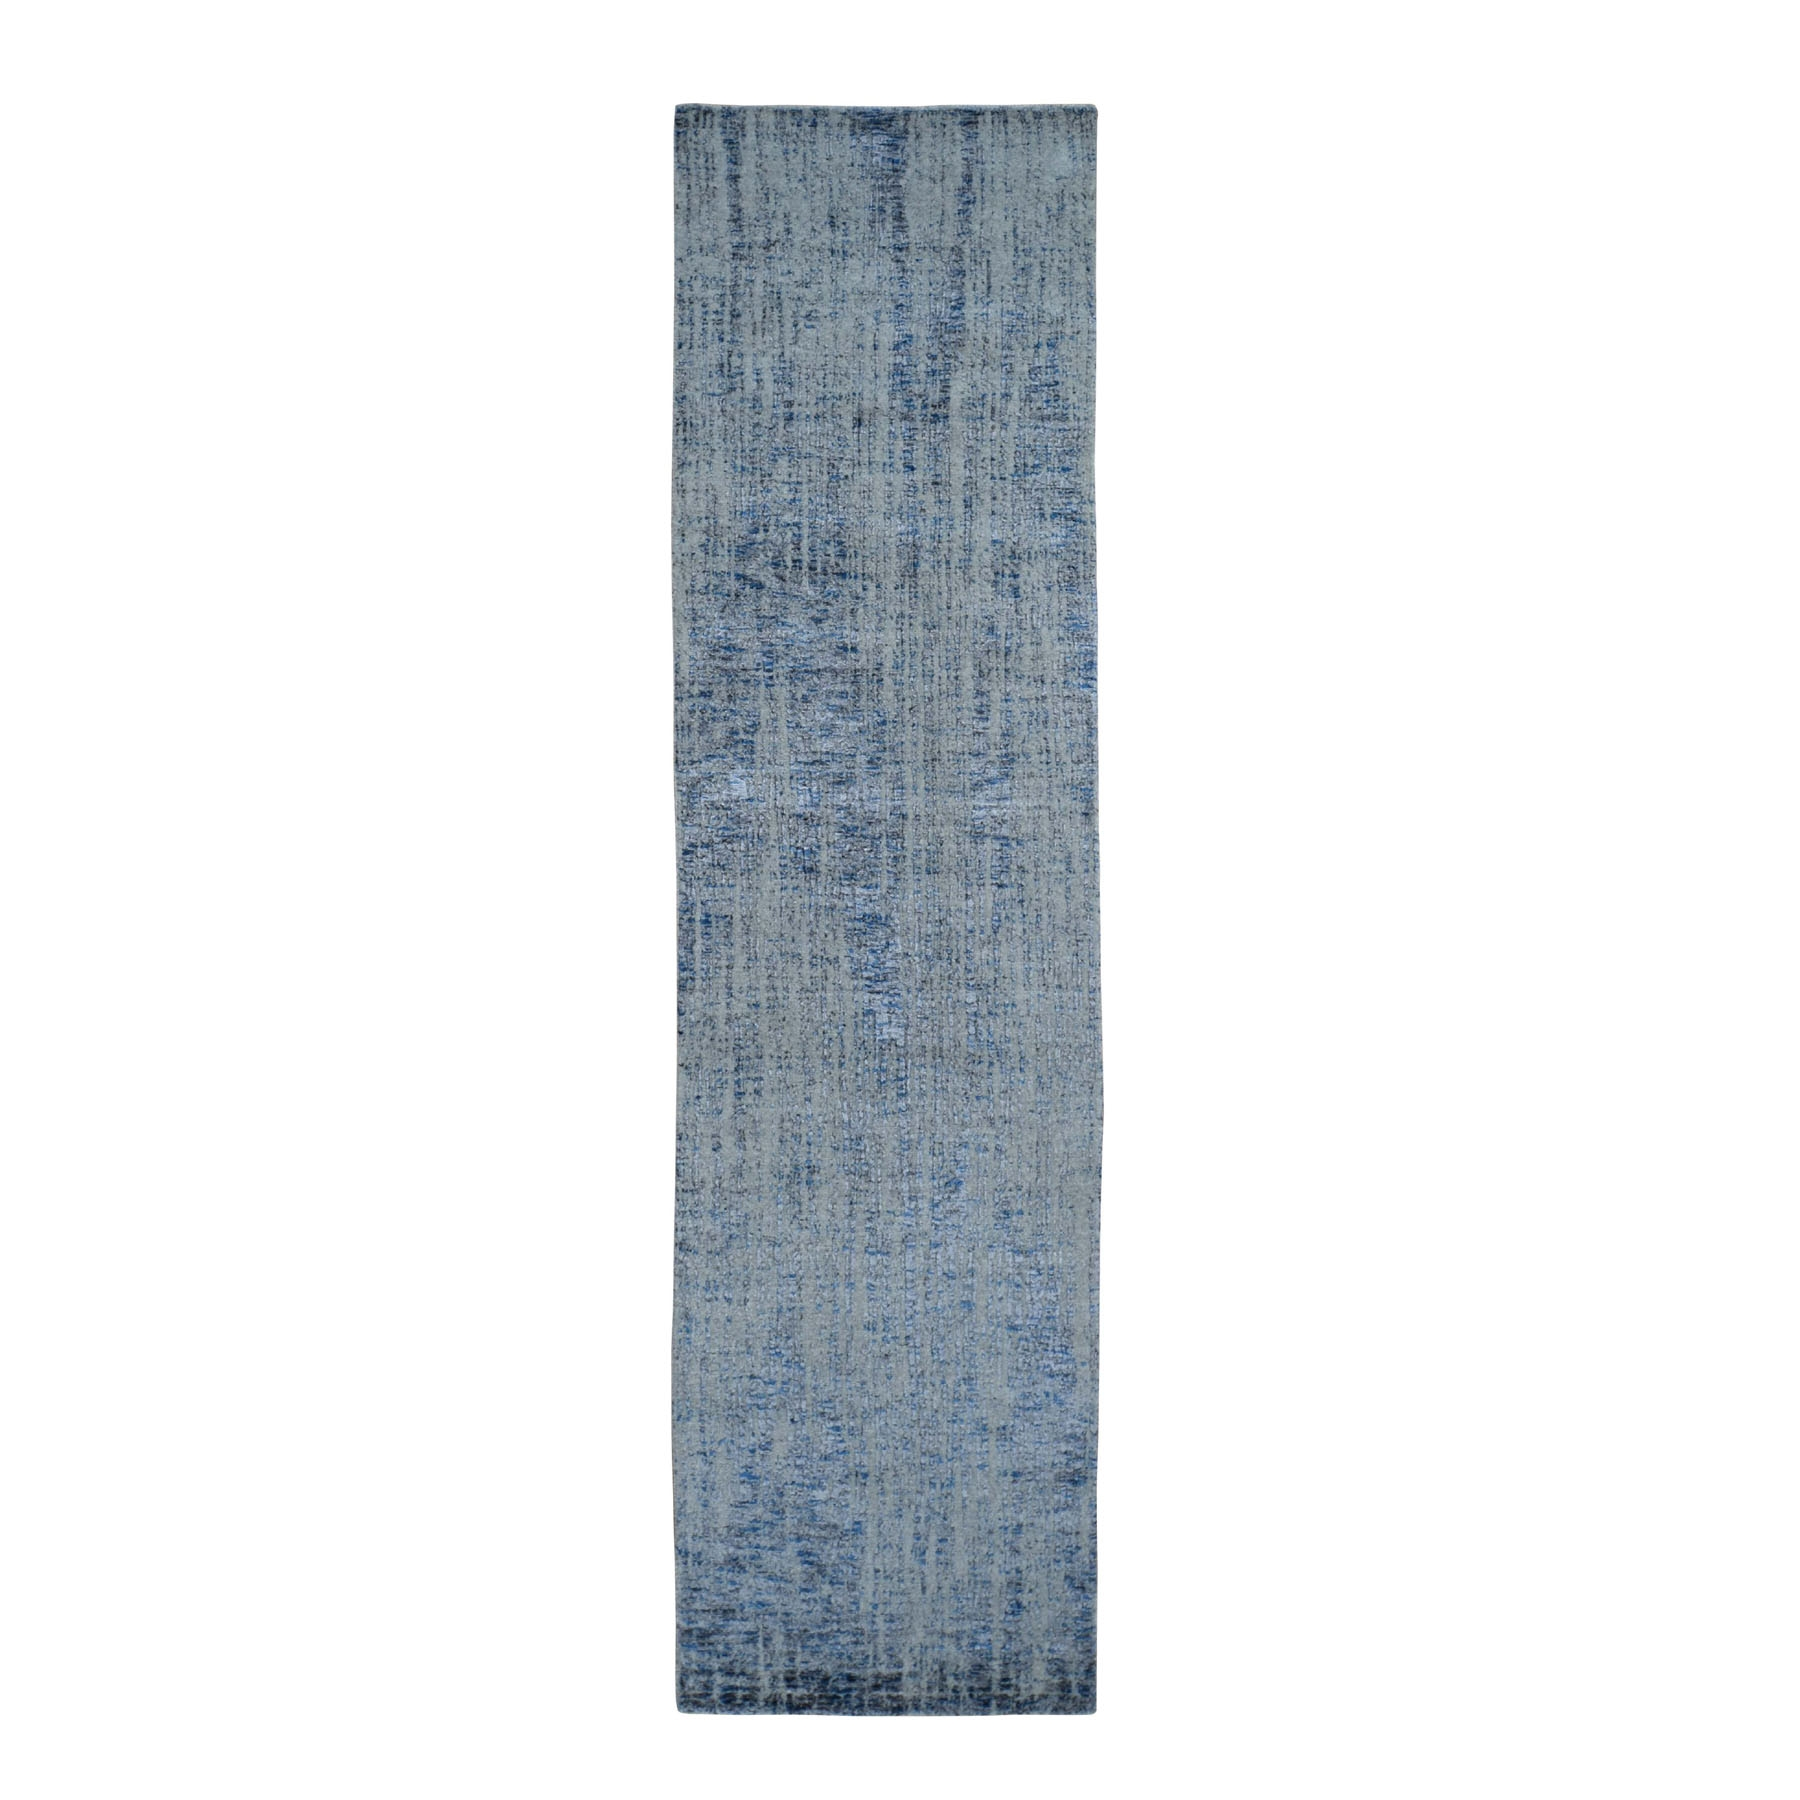 Mid Century Modern Collection Hand Loomed Grey Rug No: 0198270